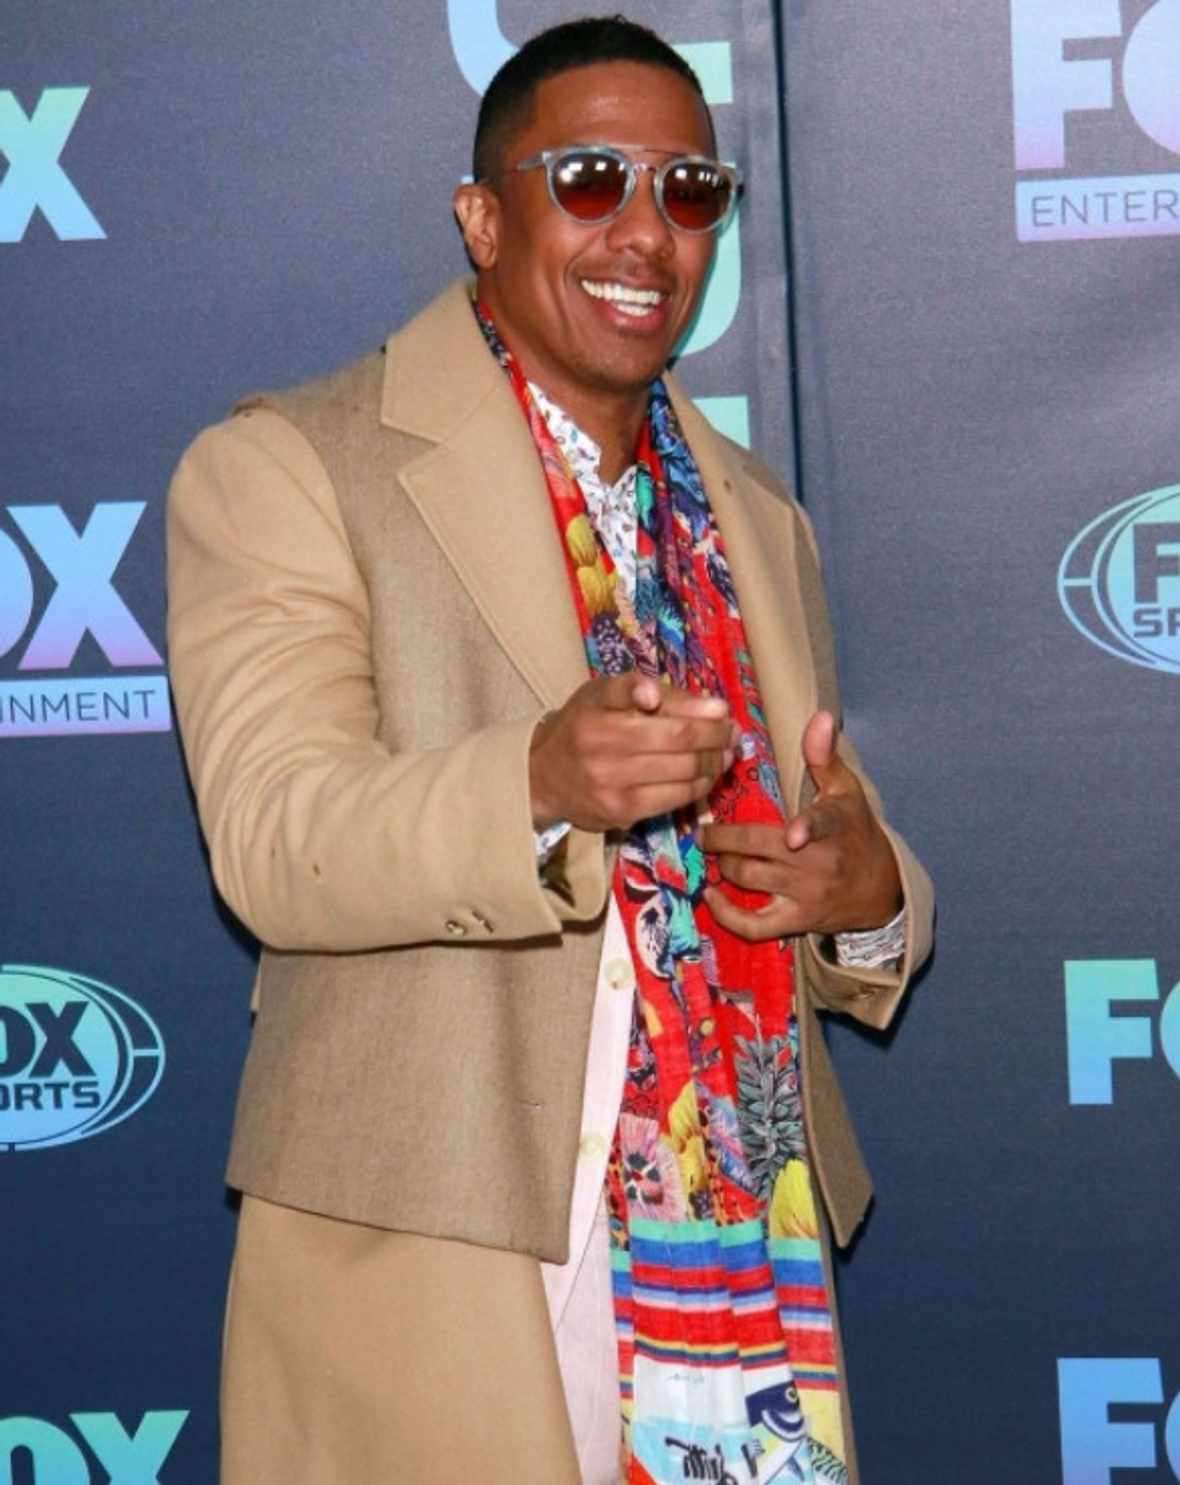 Nick Cannon. Image: Instagram